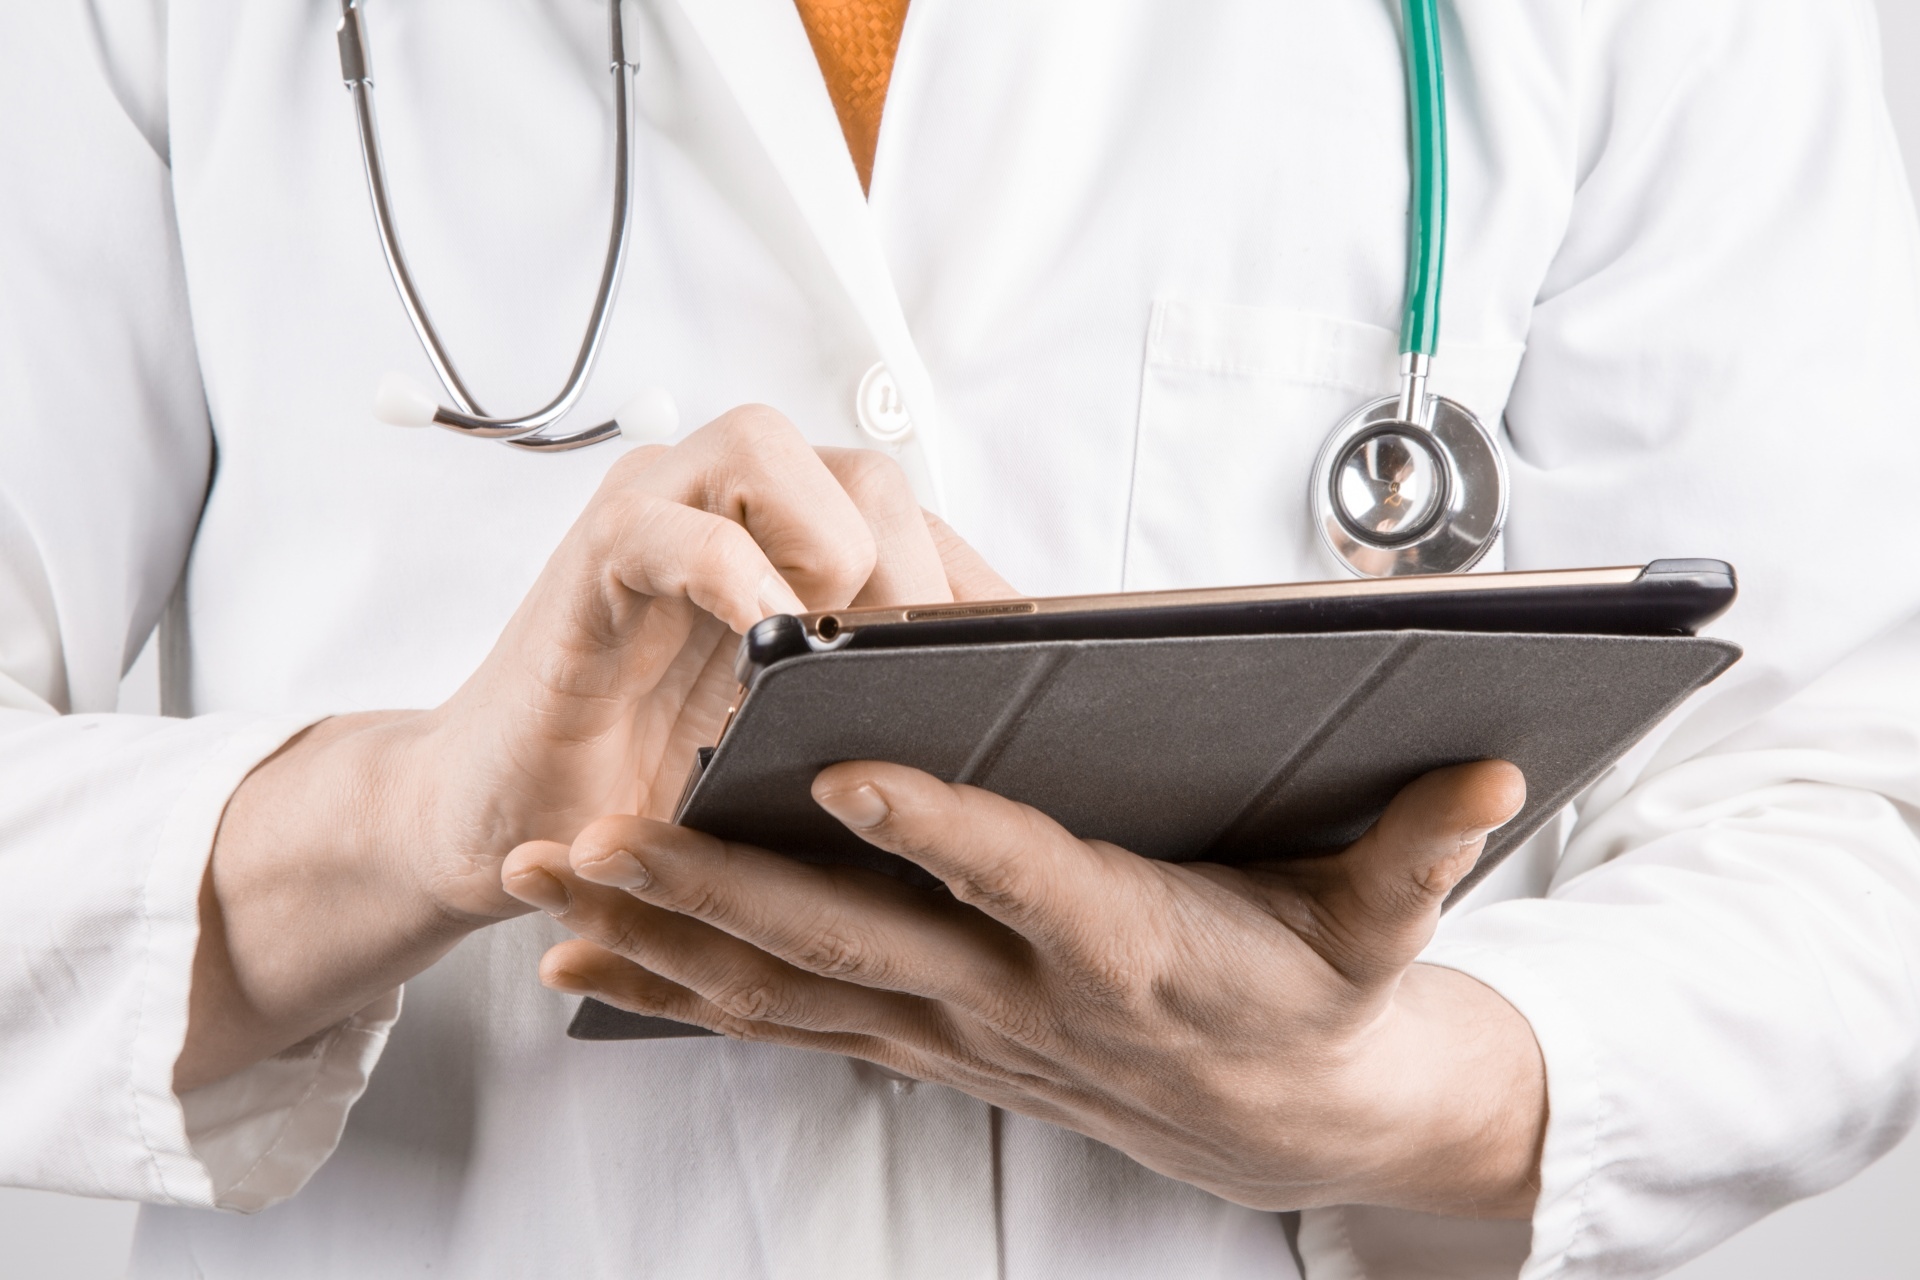 file/ELEMENTO_NEWSLETTER/20261/sanita_doctor-with-tablet.jpg